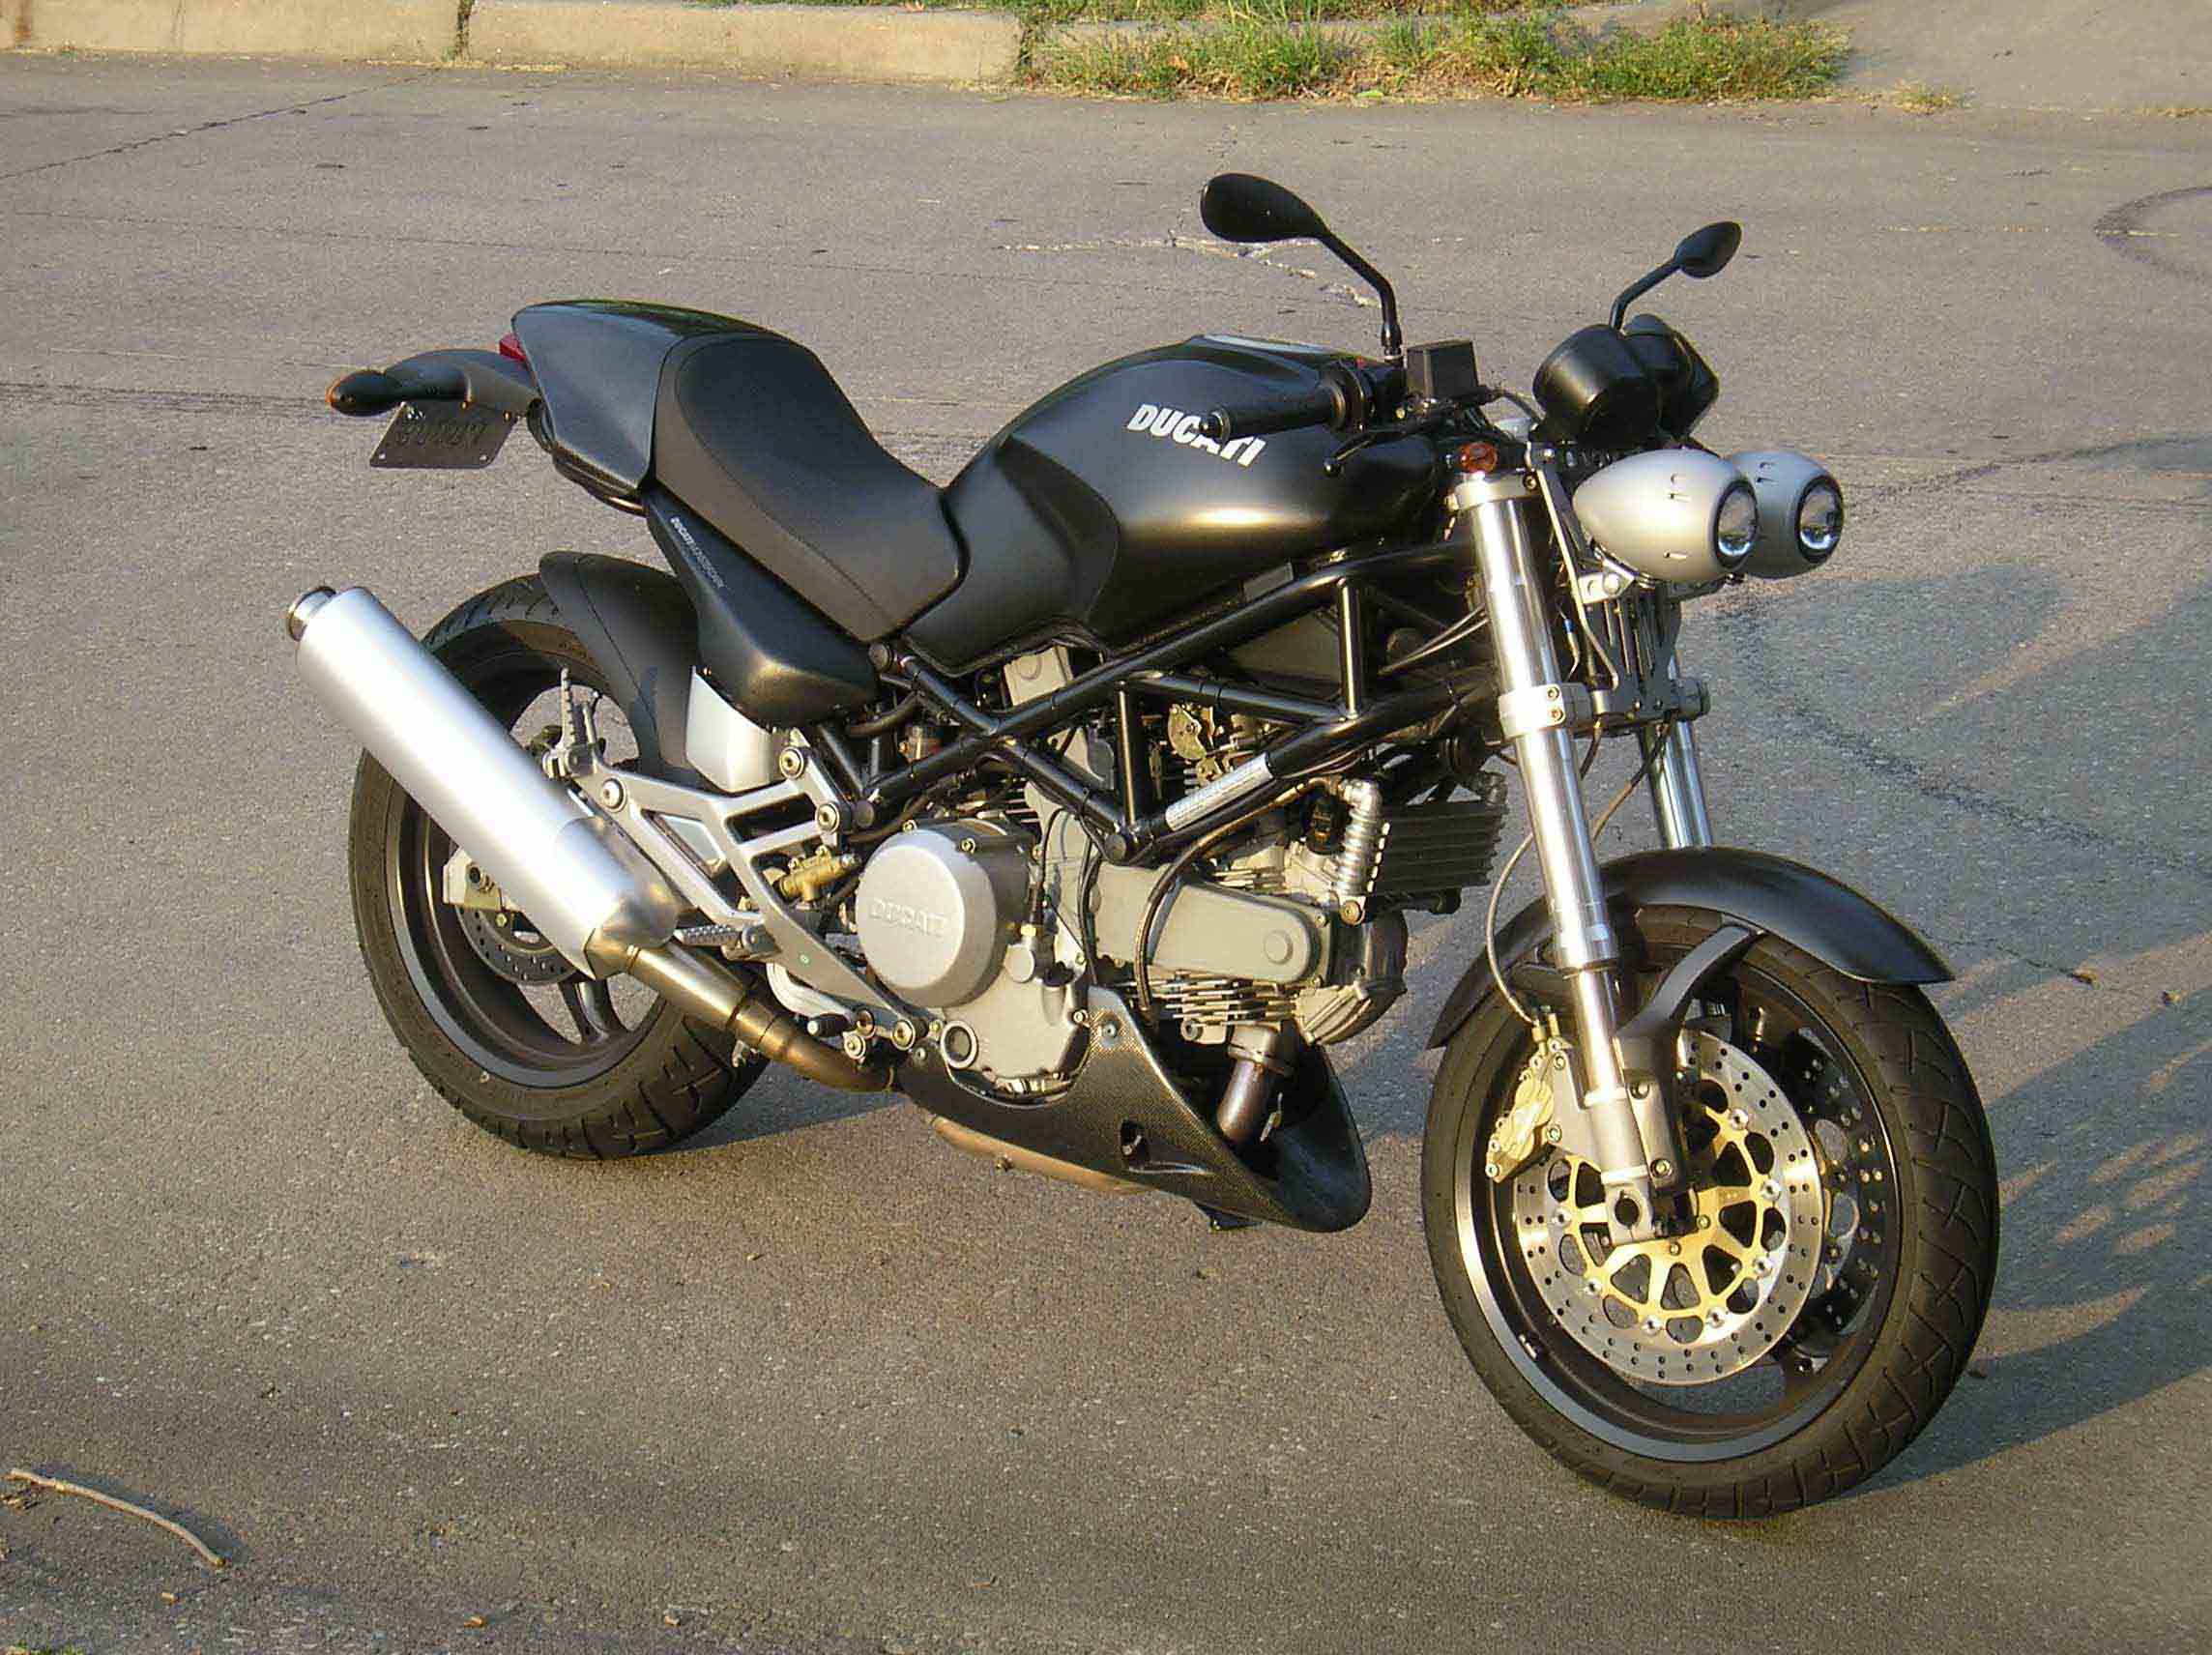 Ducati Monster 800 images #154646